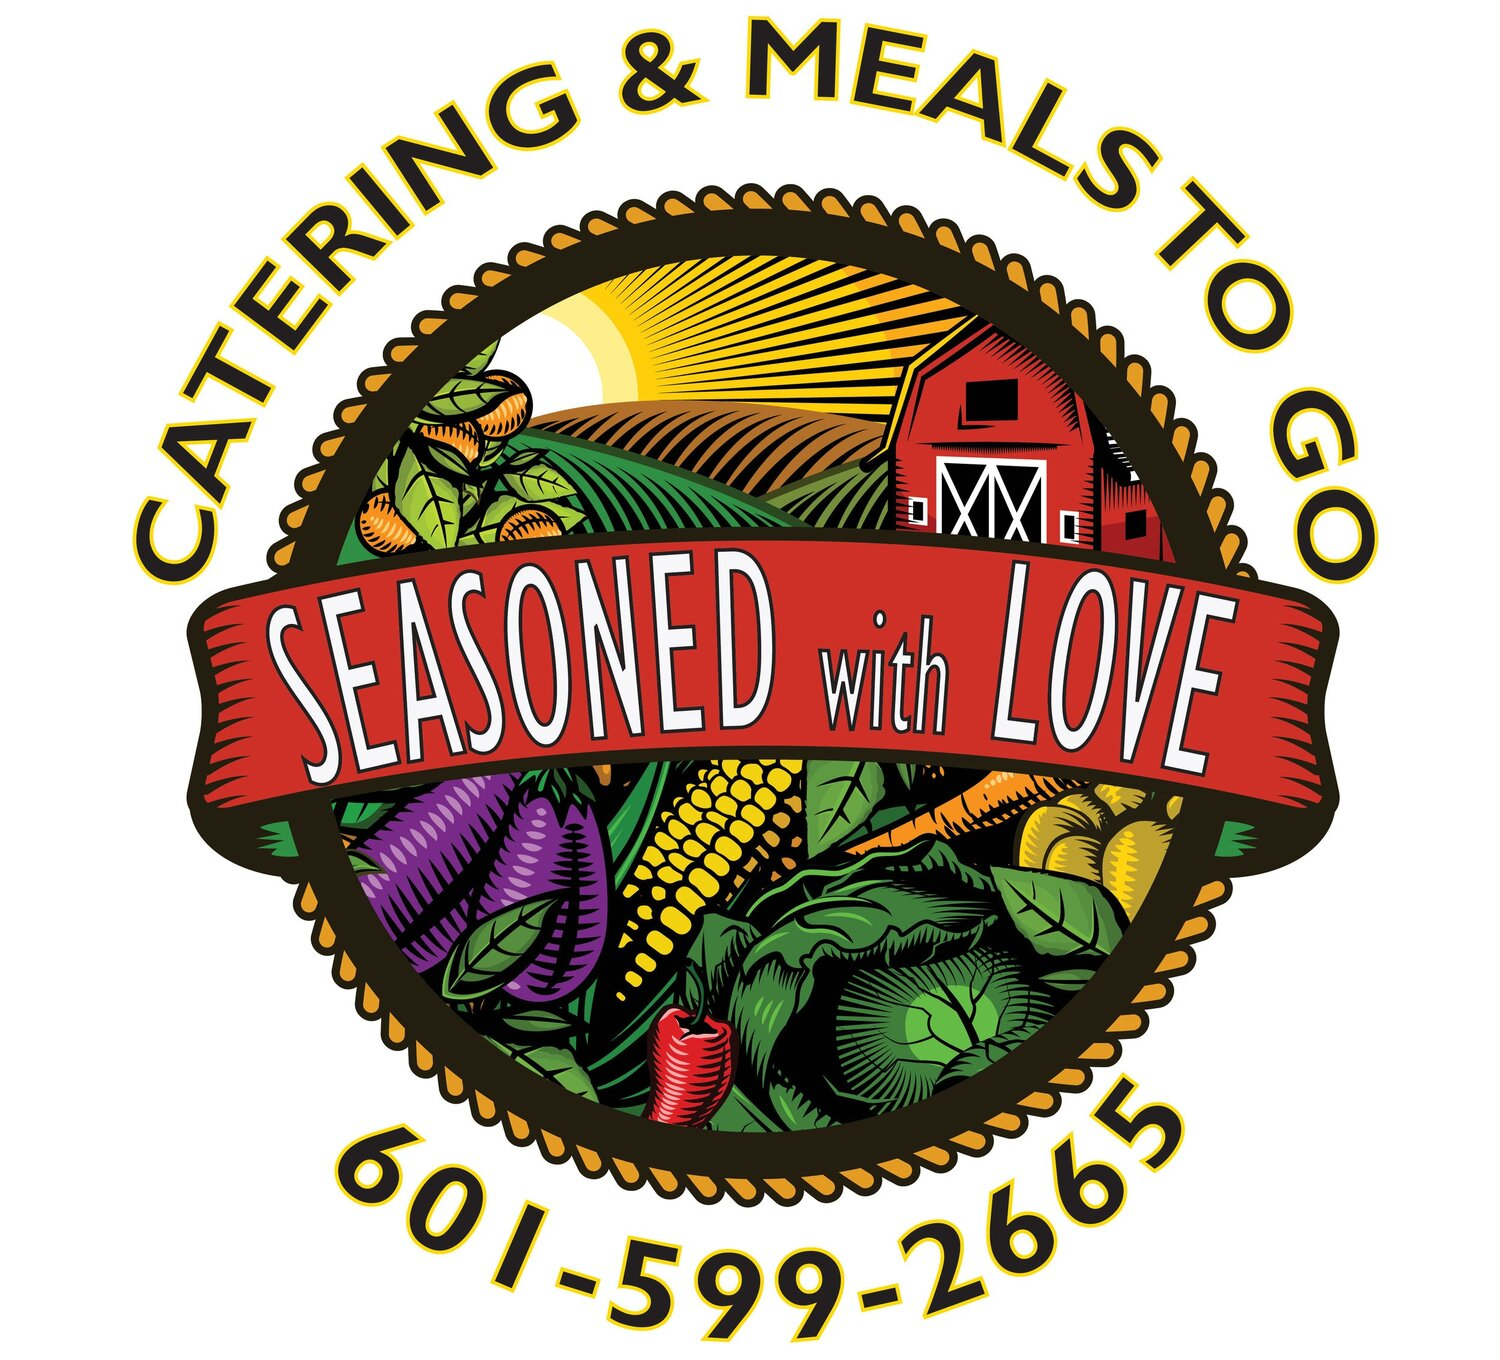 Seasoned With Love Catering